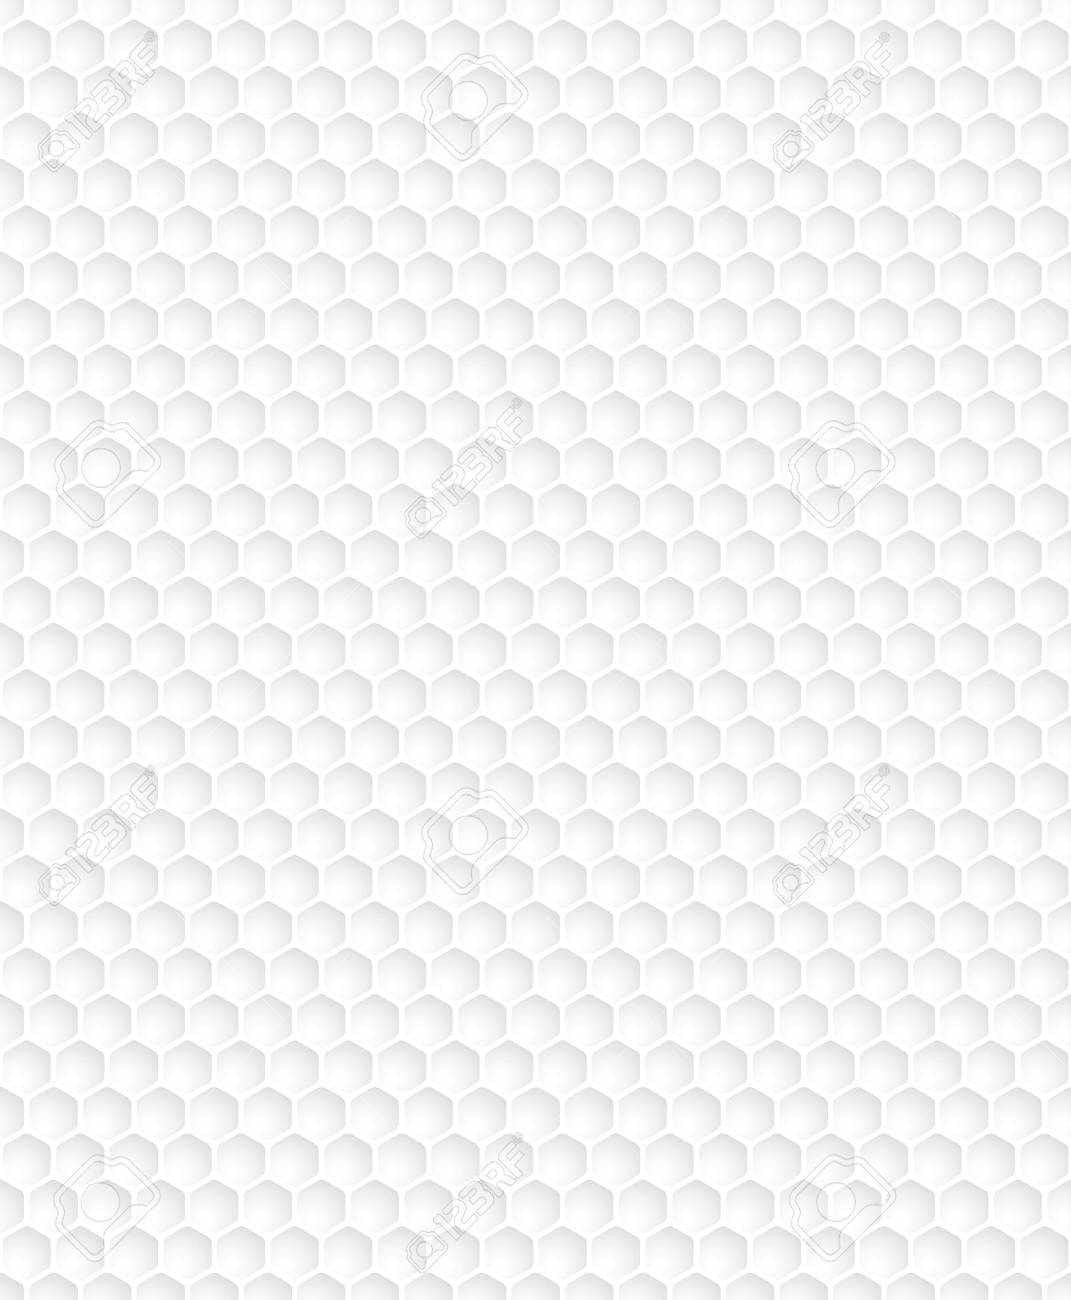 White golf ball texture seamless pattern for background. graphic design - 61040866